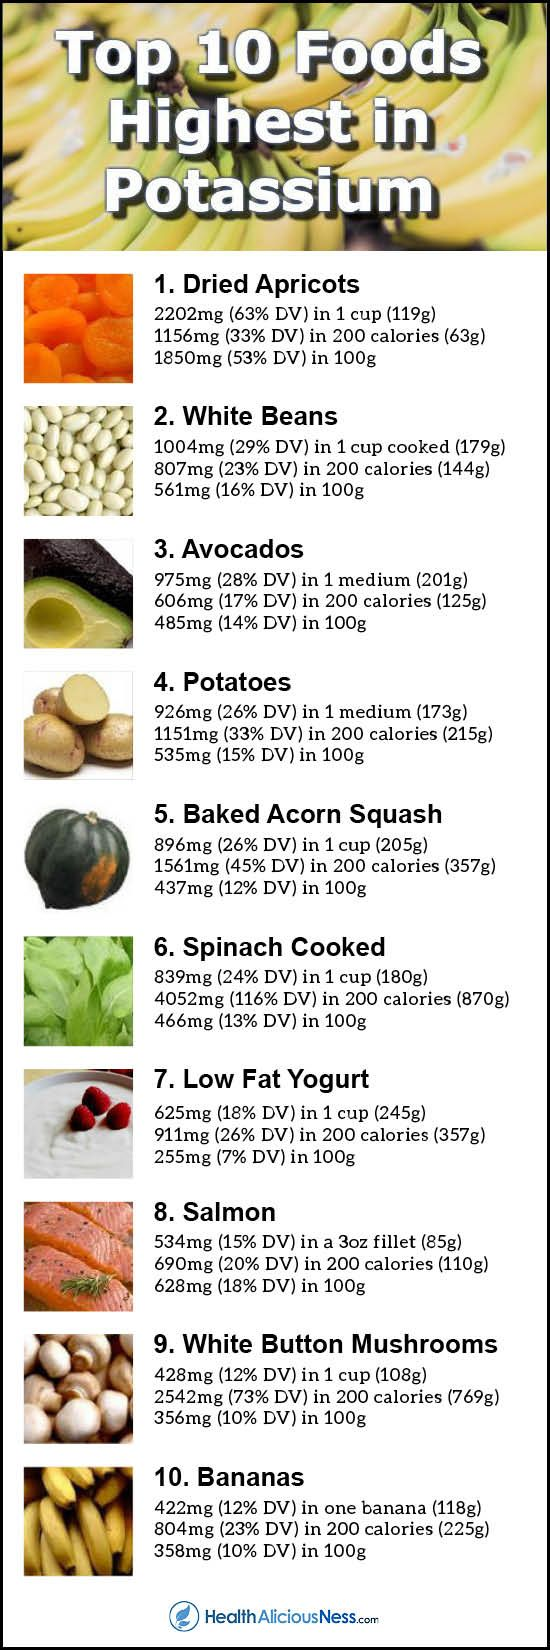 Potassium is an essential nutrient used to maintain fluid and electrolyte balance in the body. The current daily value (%DV) for potassium is 3,500 milligrams (mg). High potassium foods include dried apricots, white beans, avocados, potatoes, acorn squash, spinach, low-fat yogurt, salmon, white button mushrooms, and bananas.